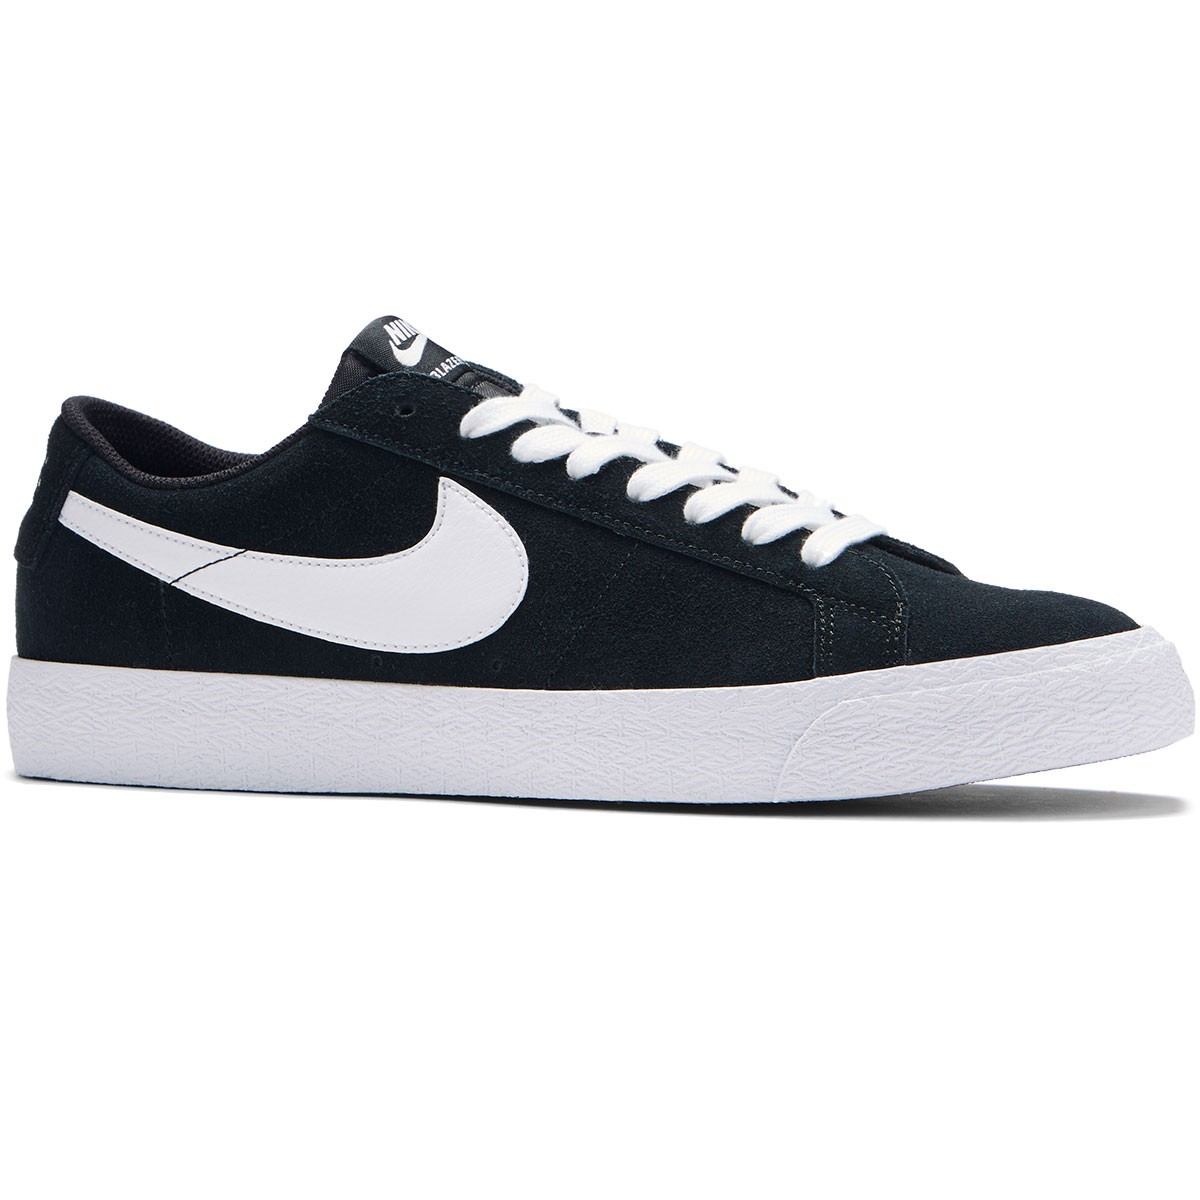 854506a1bed87 Nike SB Air Zoom Blazer Low Shoes - Black/White/Gum Light Brown -